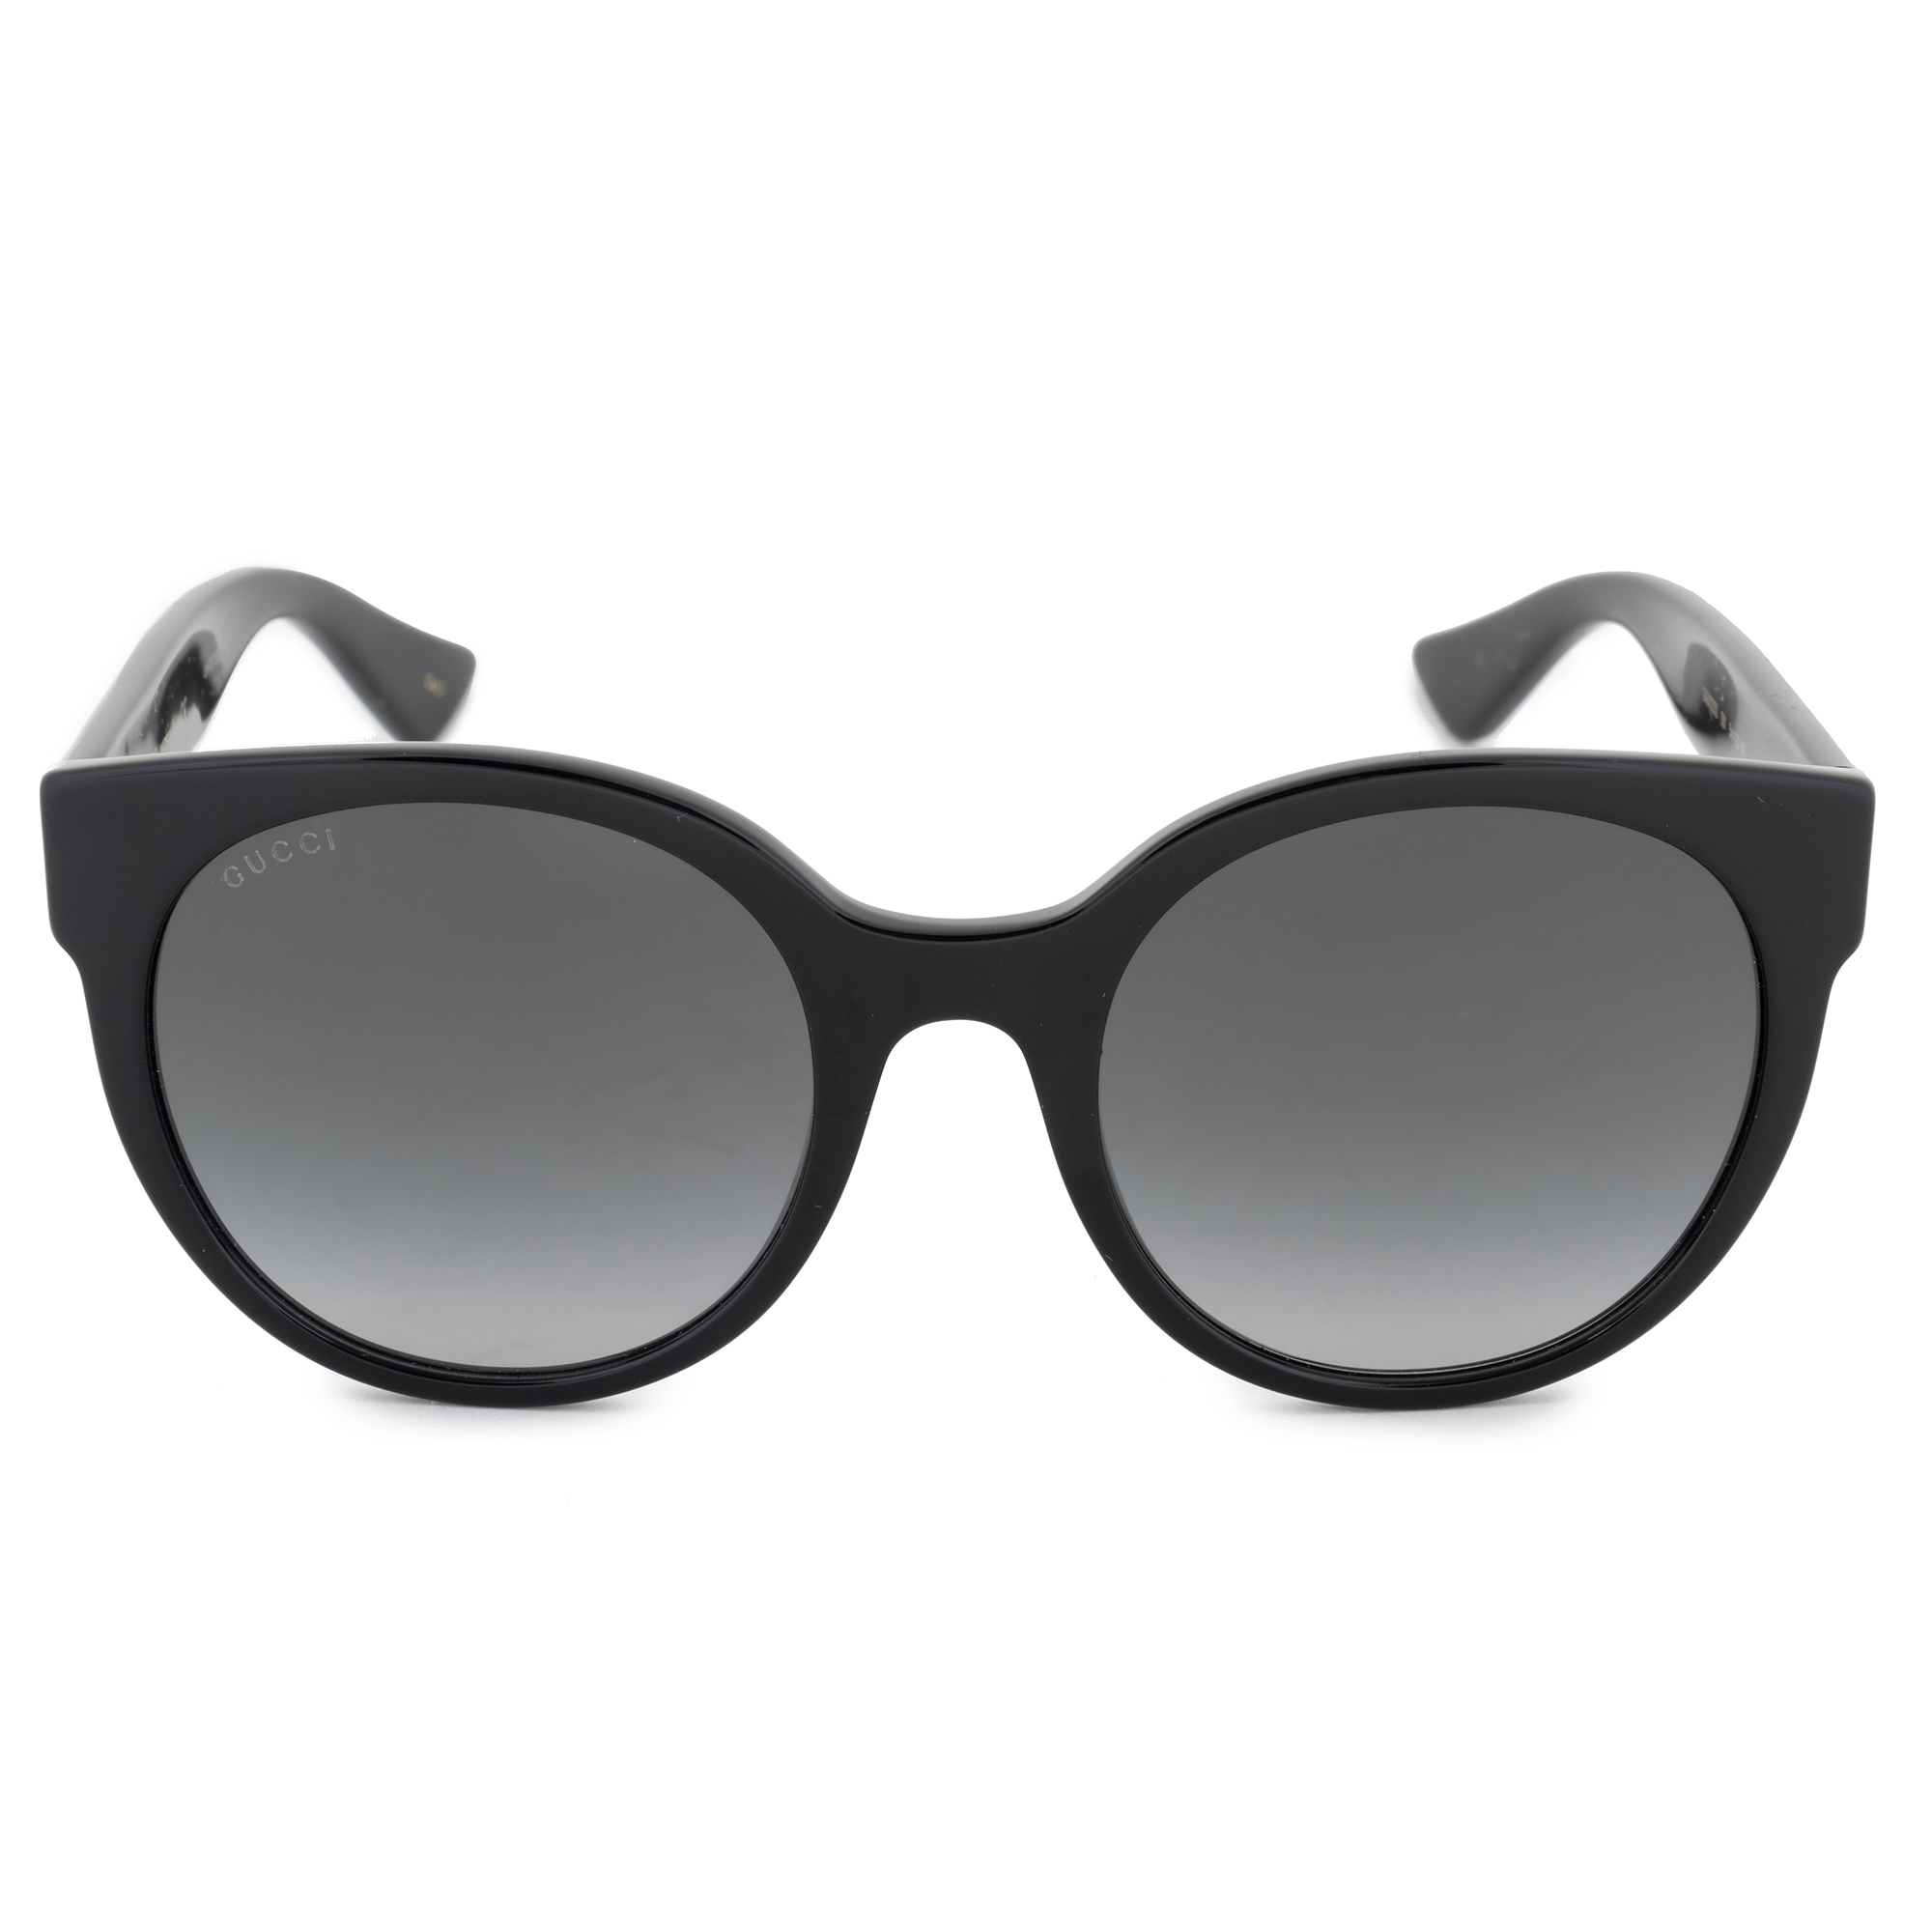 e090572d846b1 Gucci Cat Eye Sunglasses GG0035S 001 54 889652048840